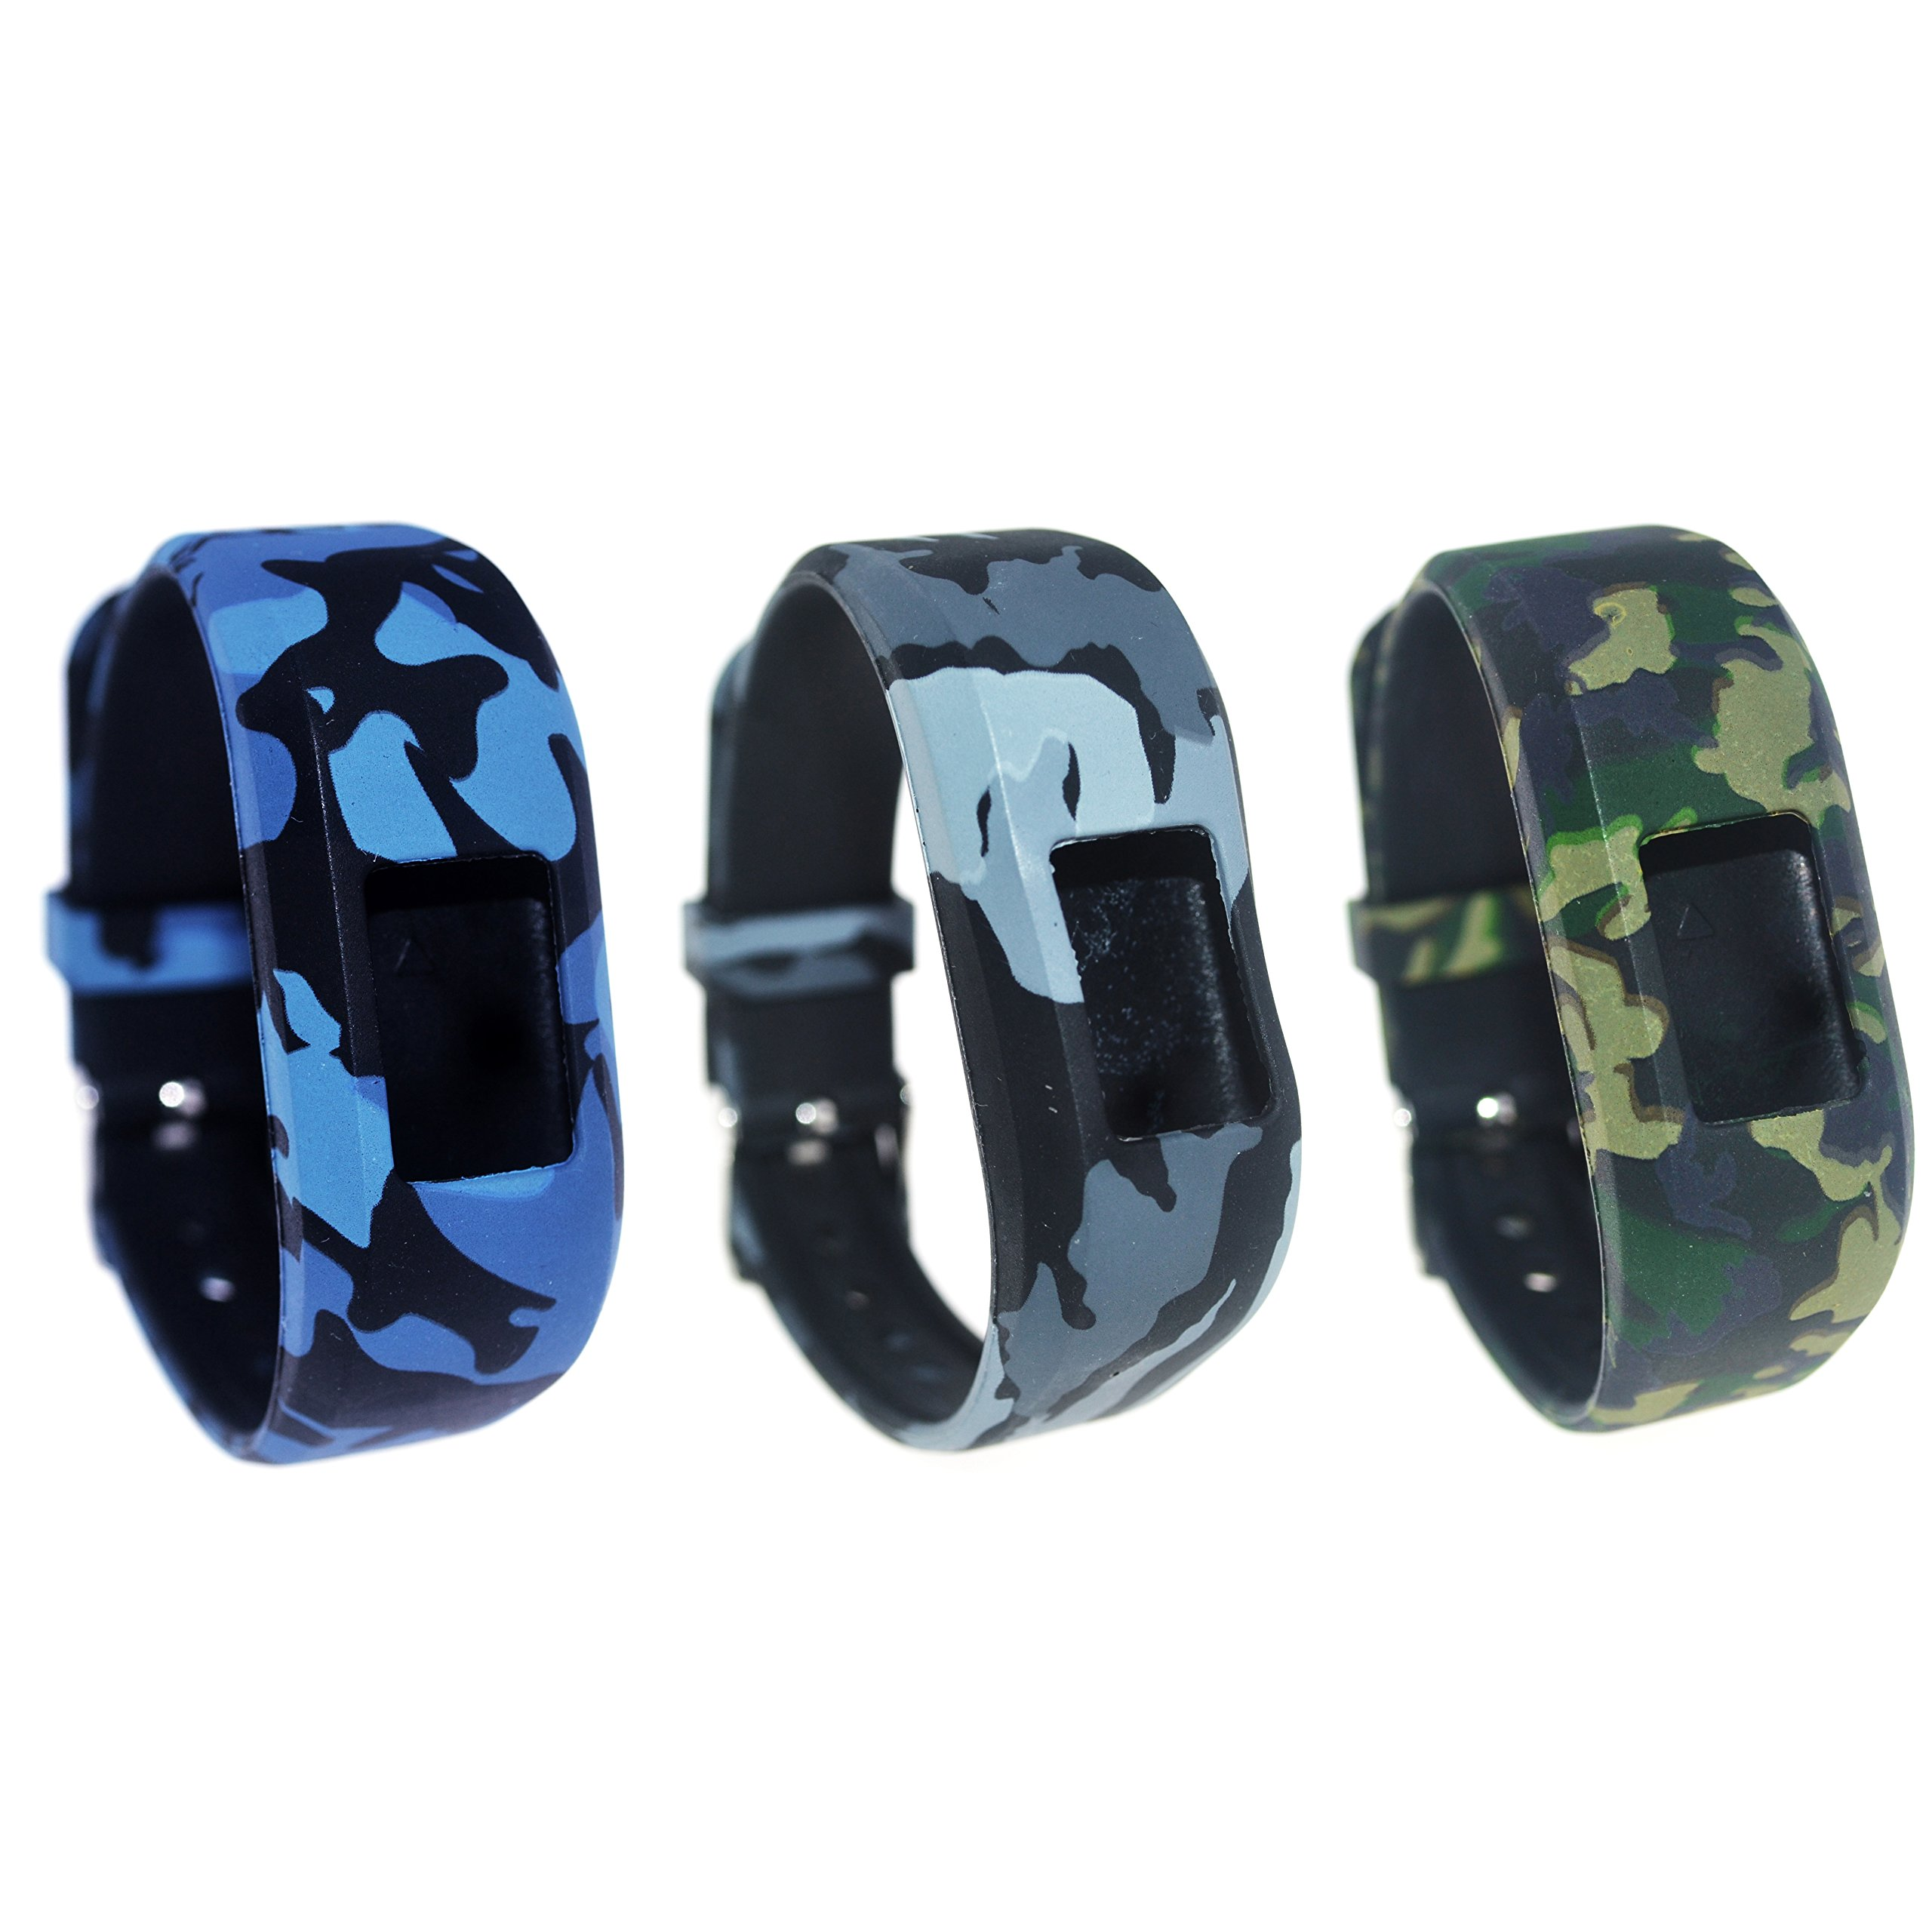 TenCloud For Garmin vivofit JR/vivofit JR.2 Tracker Replacement Soft Adjustable Silicone Kids Bands Fit Wrist 5.1in~6.9in [Ages 6+] (Three Soldiers-Mini)